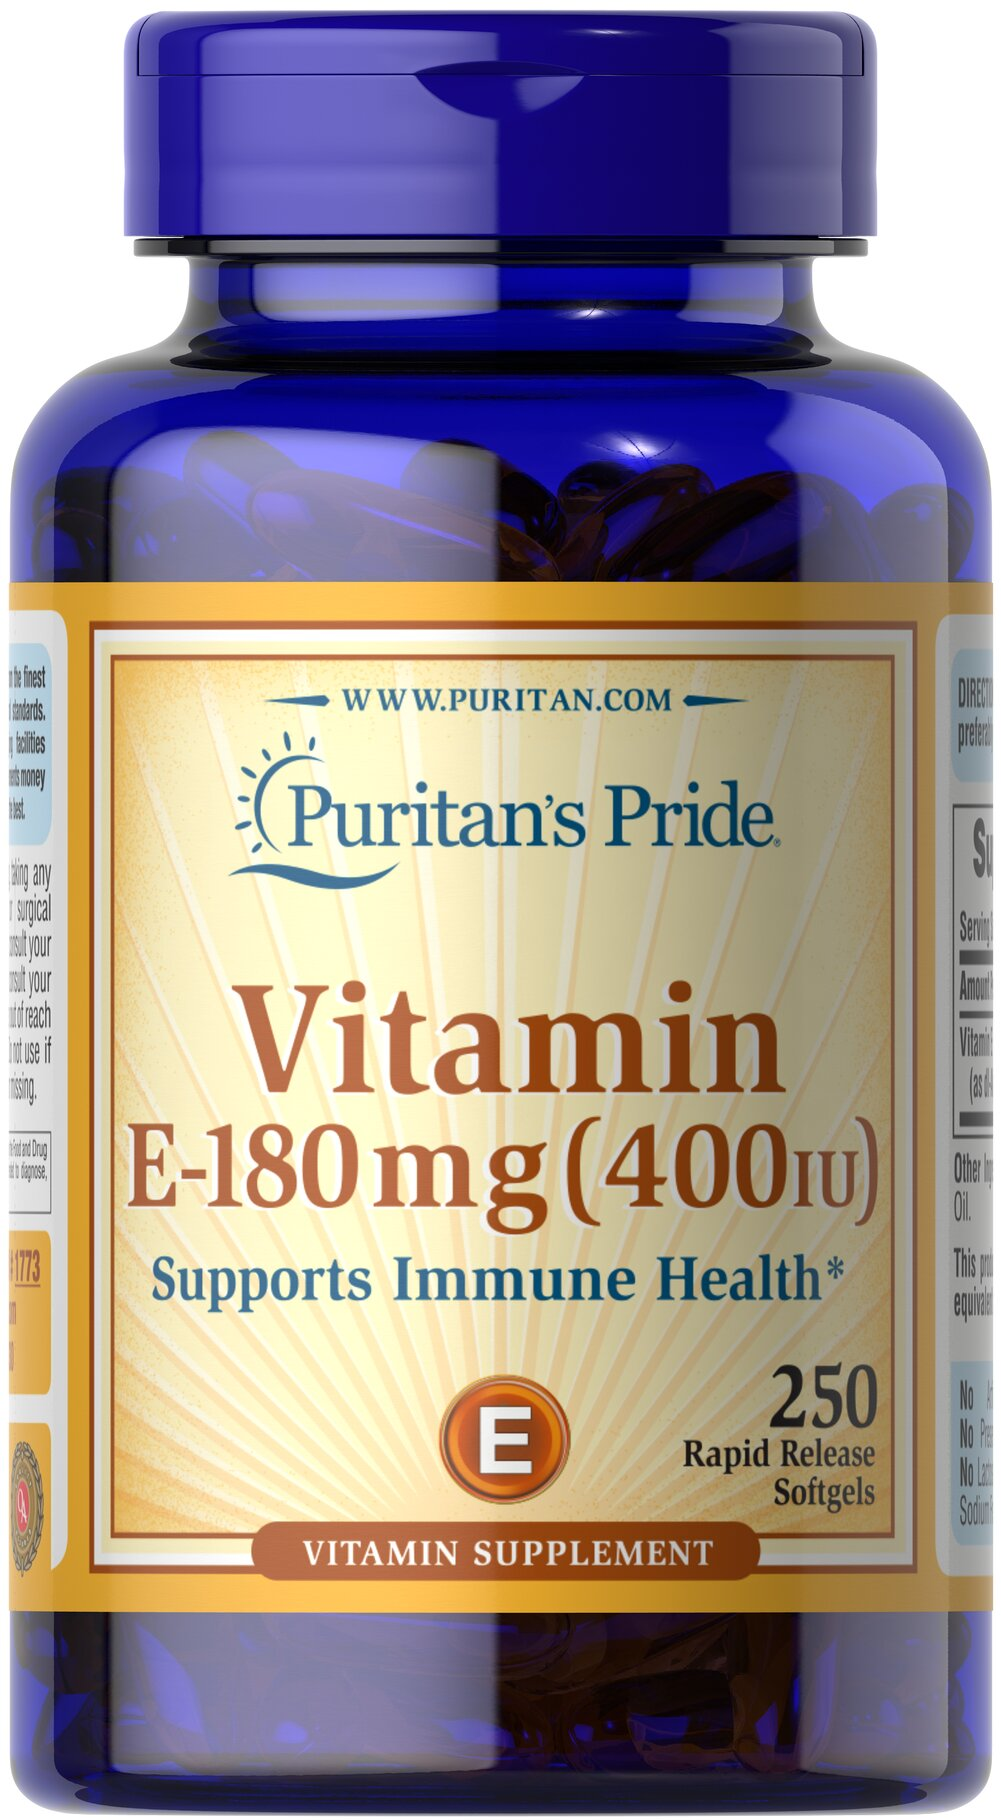 Vitamin E-400 IU <p>Features dl-Alpha Vitamin E, a synthetic form of Vitamin E</p> <p>Promotes heart and circulatory health**</p> <p>Contributes to healthy skin and immune function**</p> <p>Rapid release liquid softgels are easy to swallow</p> <p>One a day formula</p> 250 Softgels 400 IU $21.99